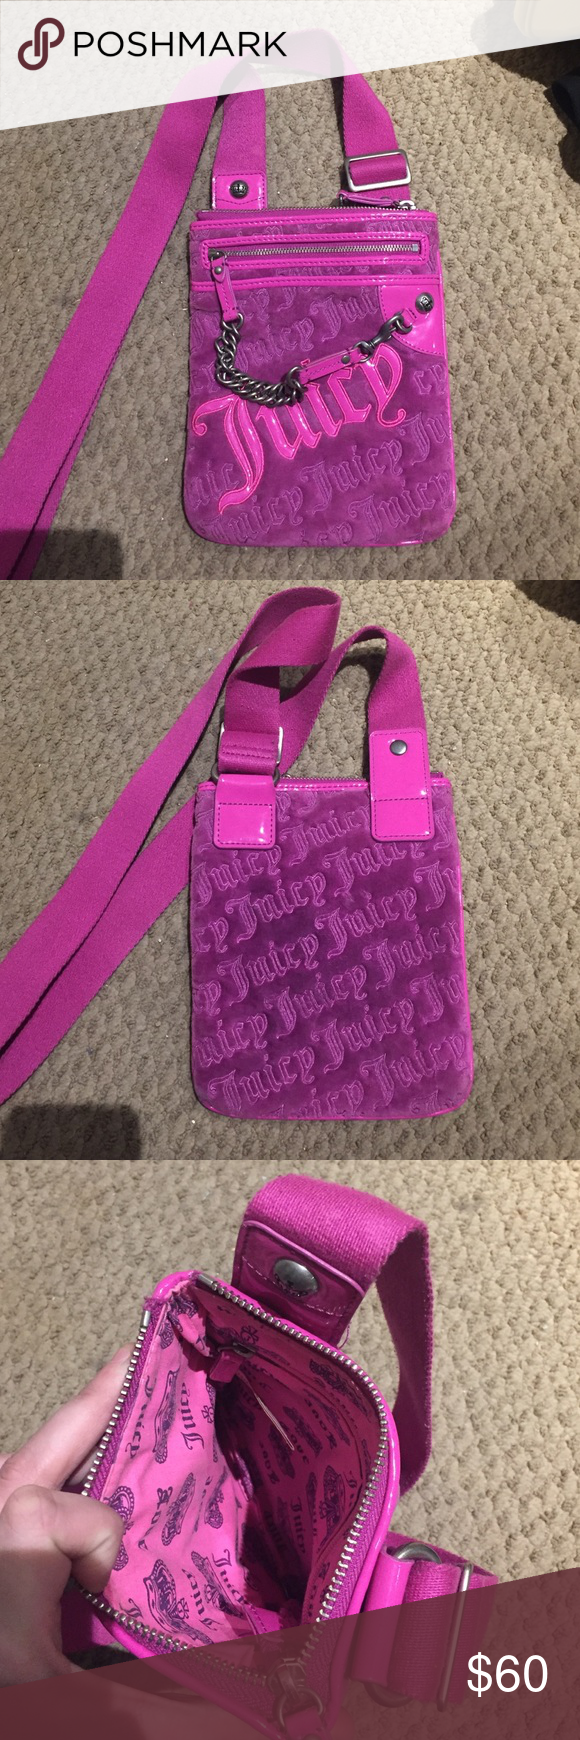 Juicy Couture Crossbody Purse This pinkish-purple purse is perfect for your wallet, phone, keys and more! With 3 additional pockets, this bag looks small but holds a lot! Inside and outside perfectly intact! Juicy Couture Bags Crossbody Bags